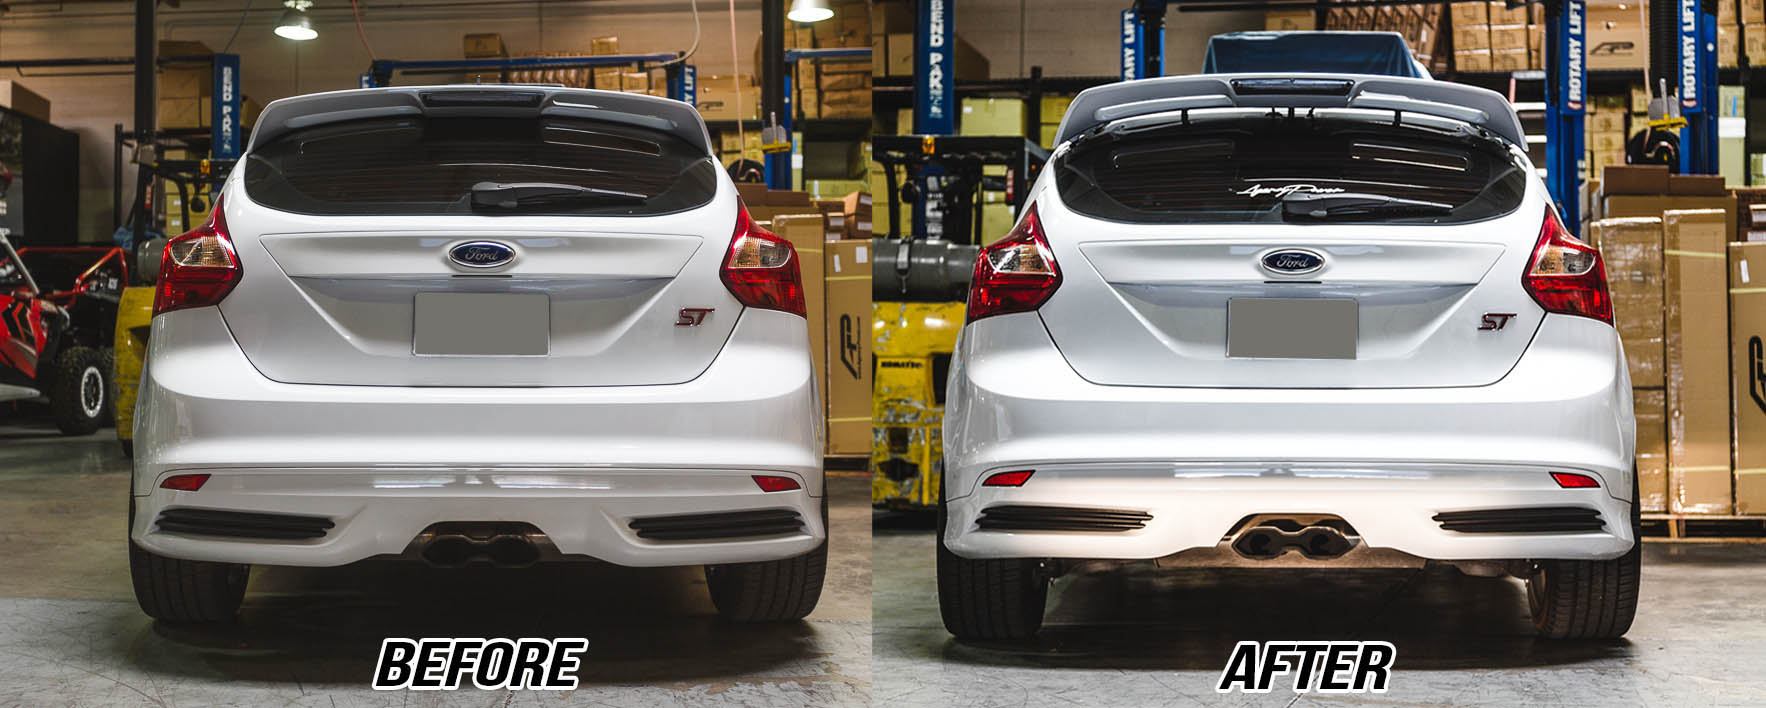 Agency Rear Spoiler Risers Ford Focus Rs St Touch To Zoom